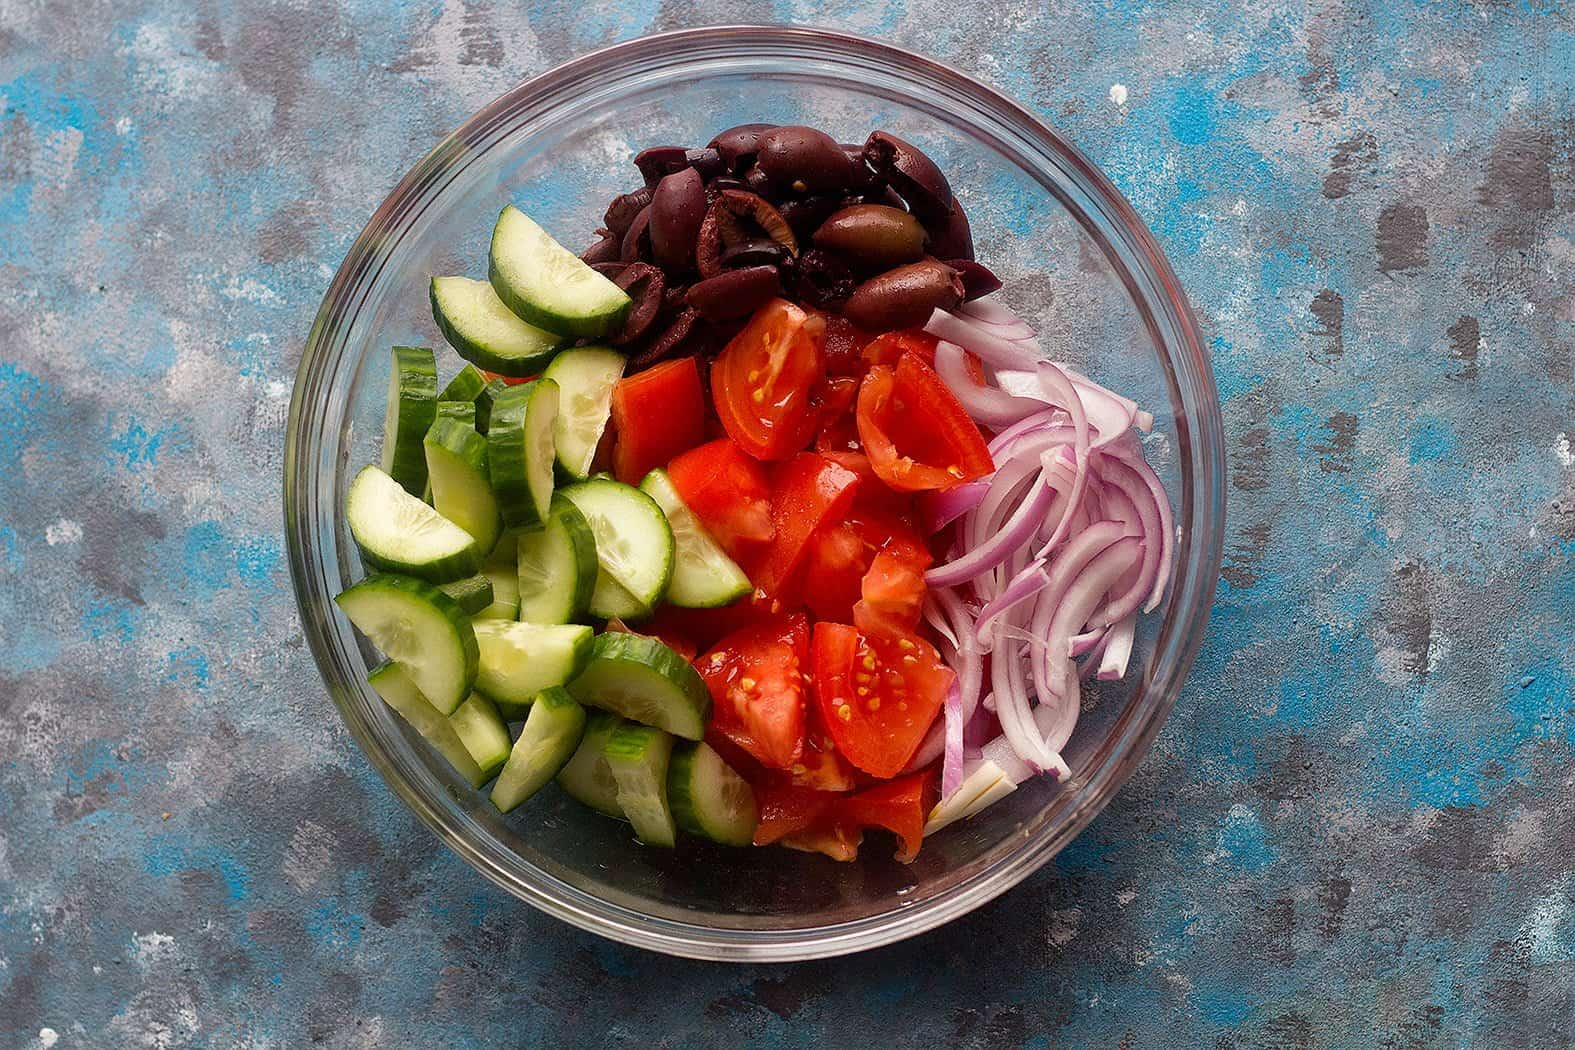 To make authentic Greek salad, chop all the ingredients into large chunks.